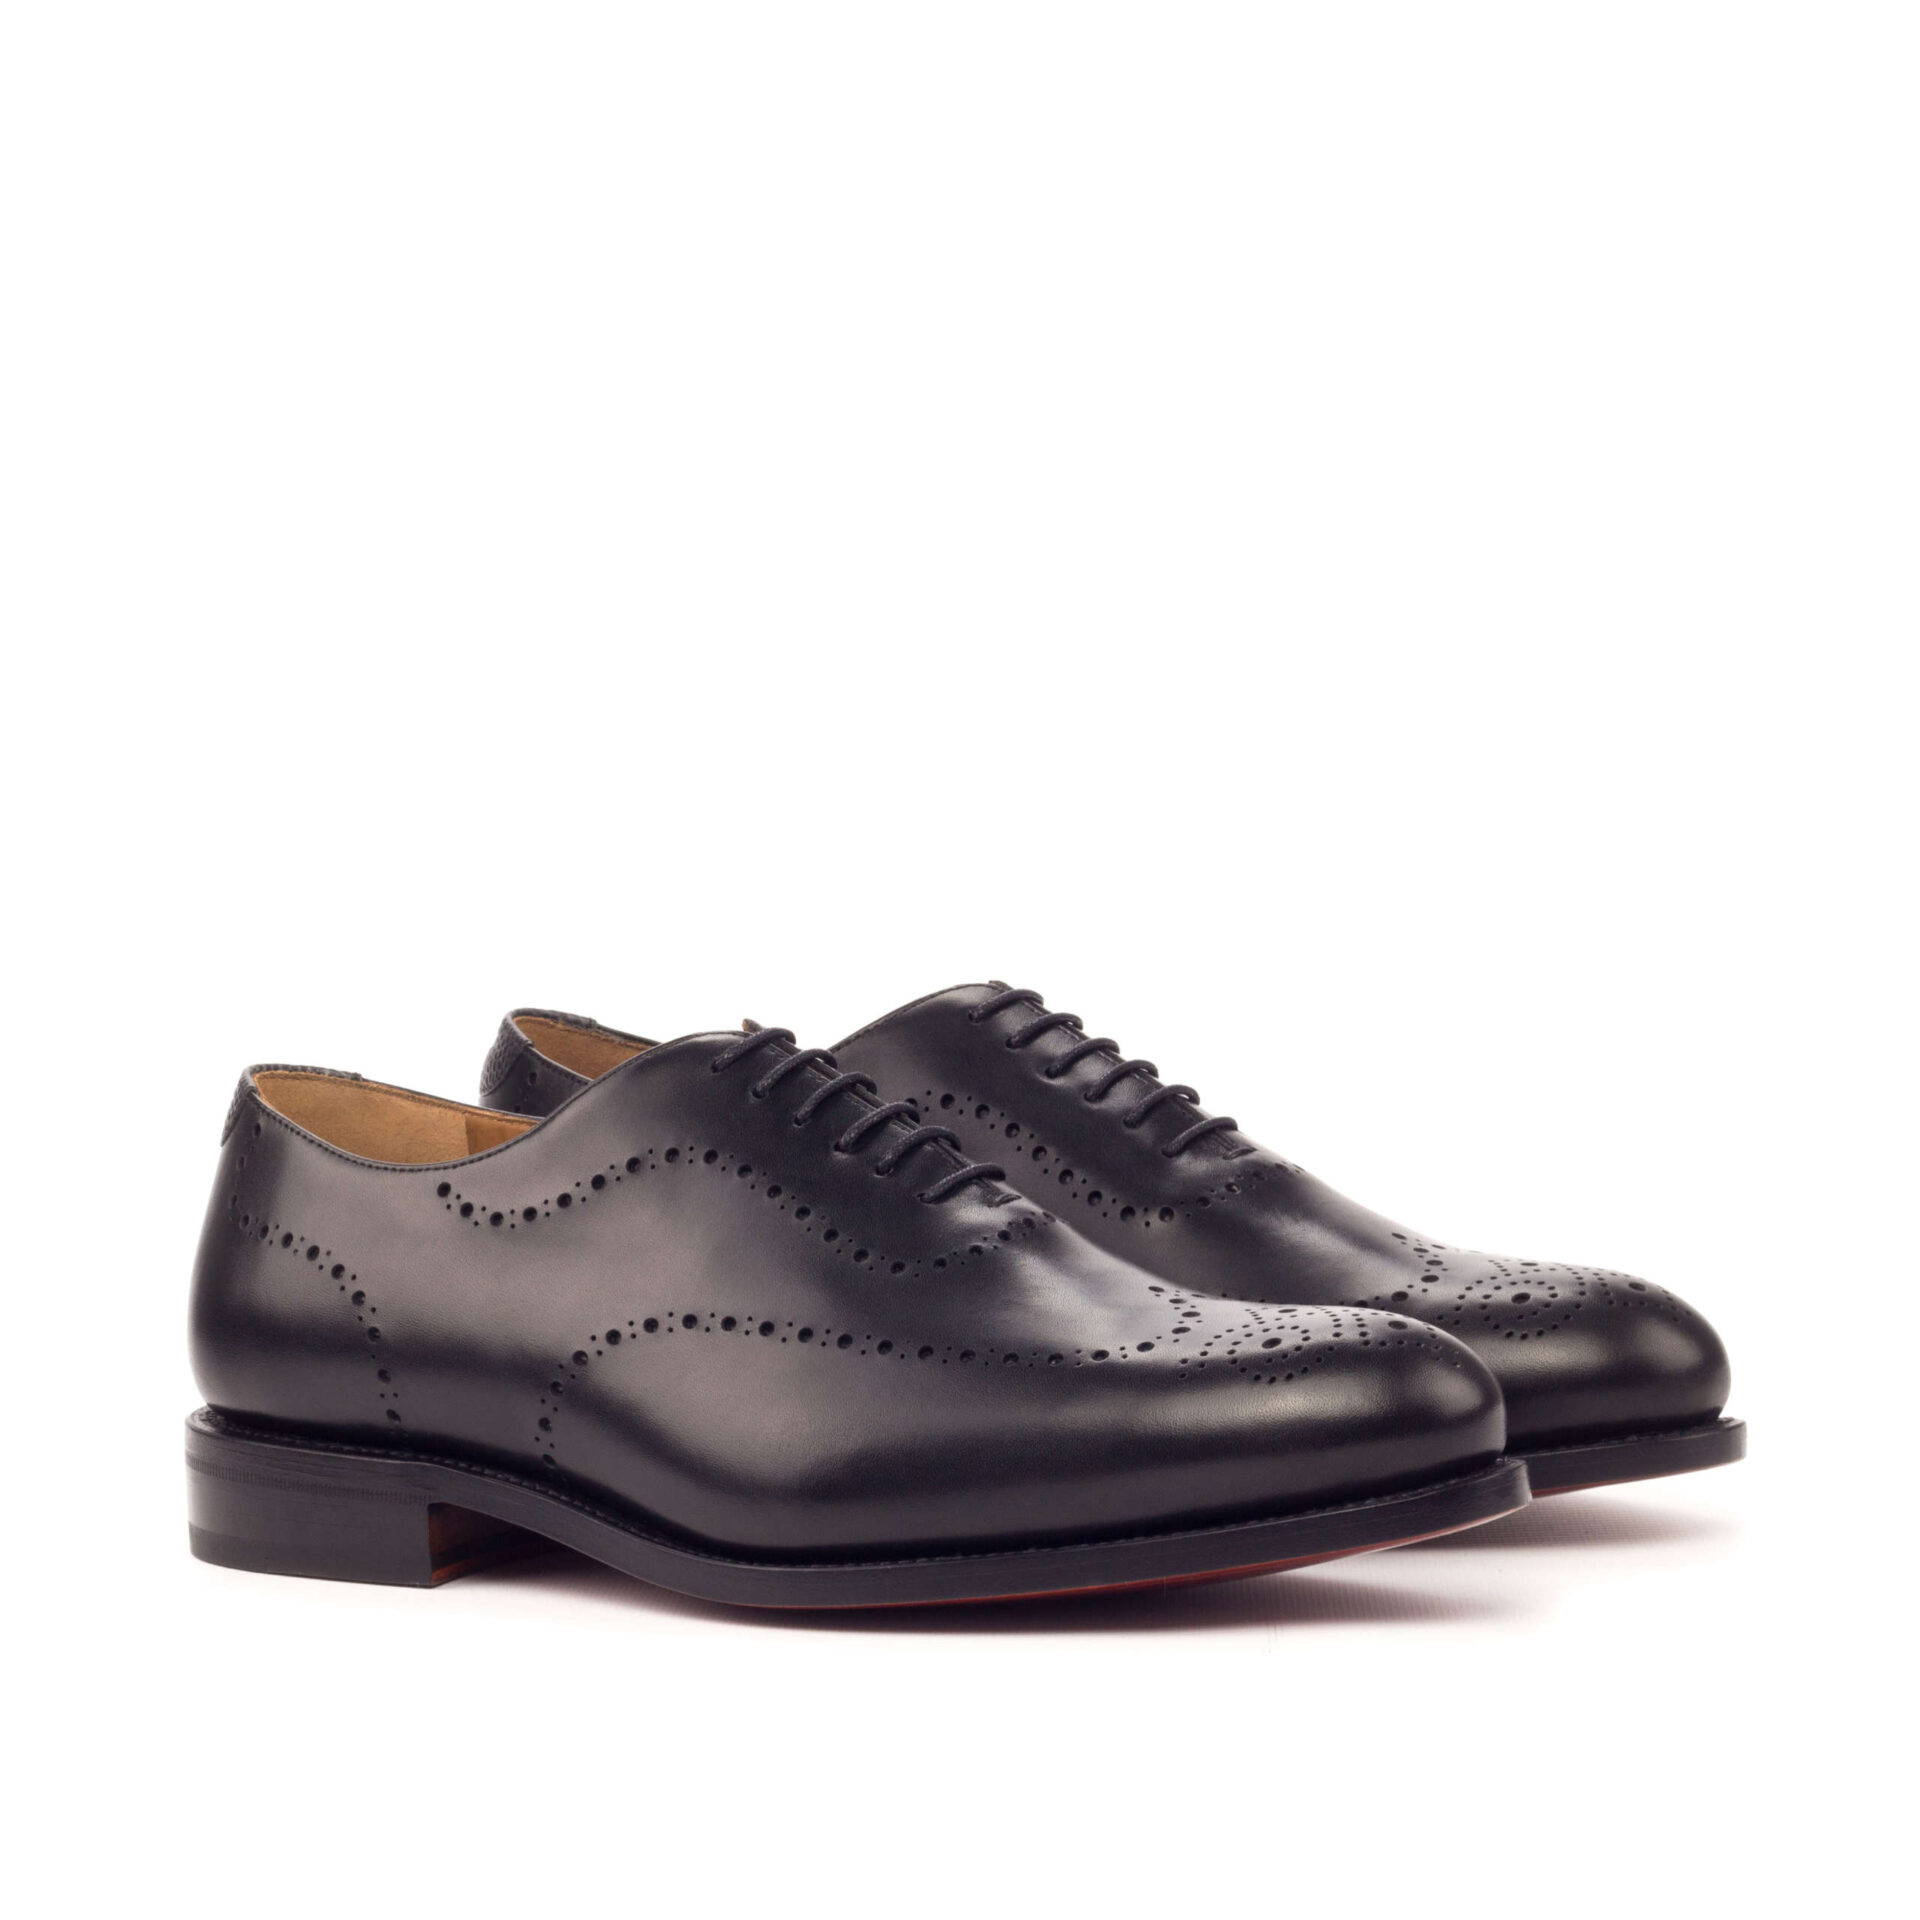 Goodyear Welted Whole Cut Shoe